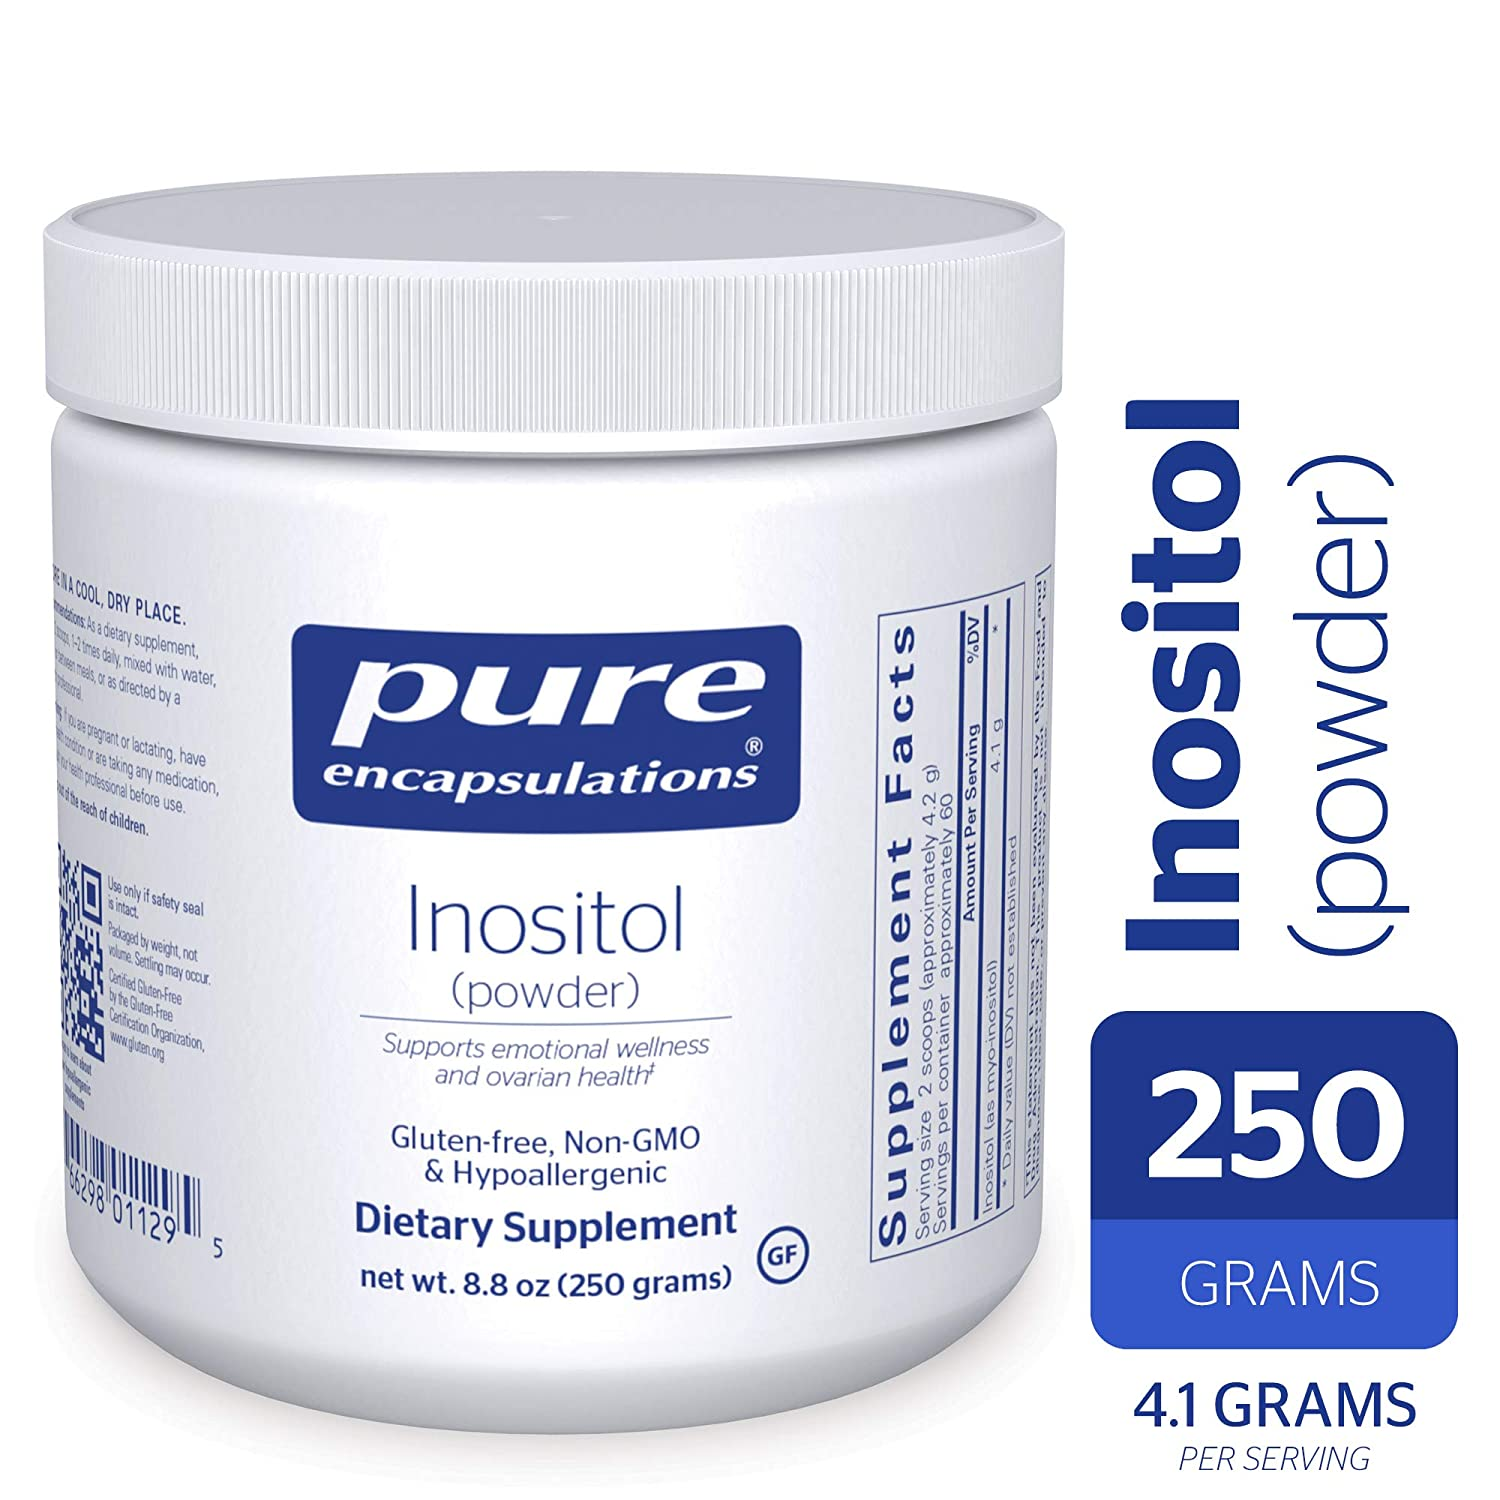 Pure Encapsulations - Inositol (Powder) - Hypoallergenic Supplement  Supports Healthy Mood,